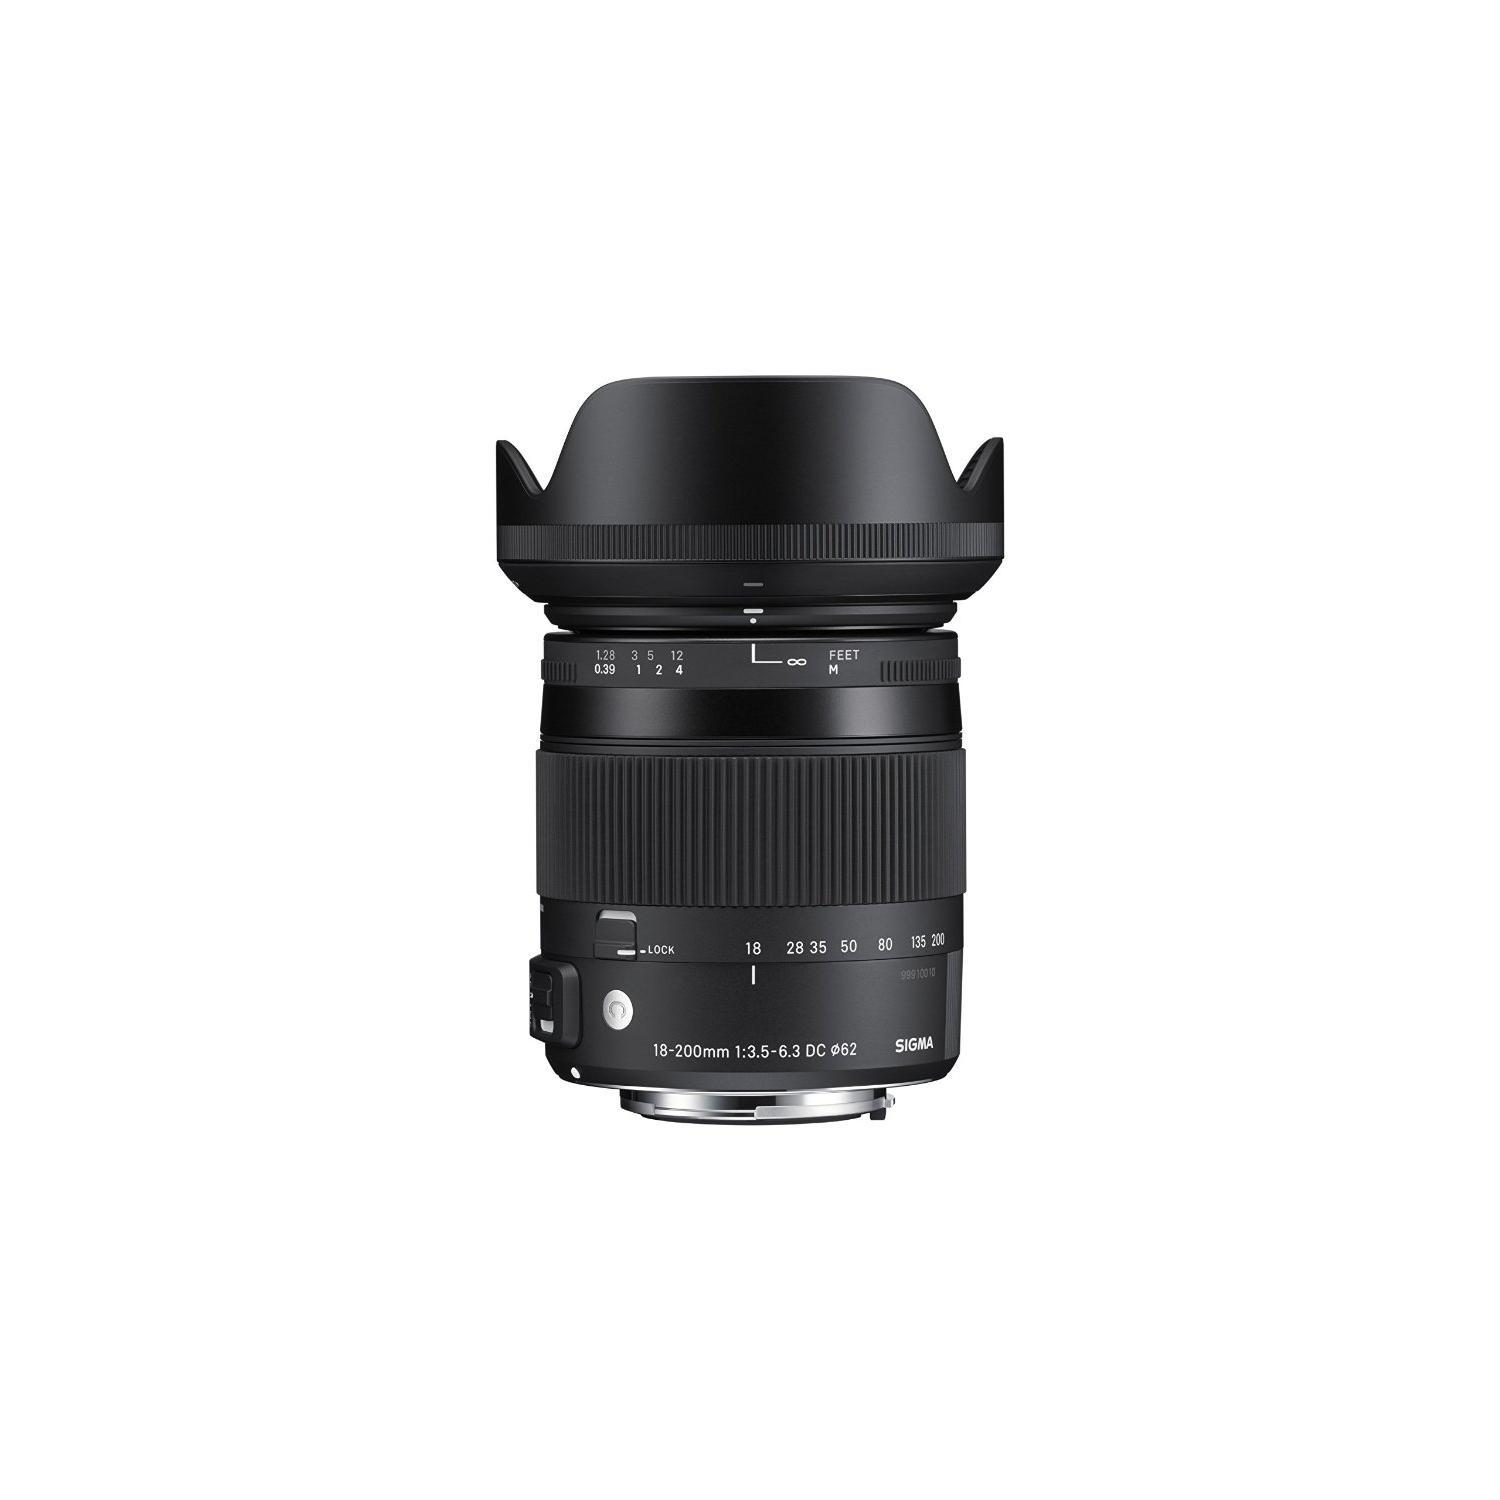 Sigma - Objectif Macro 18-200 mm F 3,5-6,3 DC OS HSM CONTEMPORARY - Monture Canon